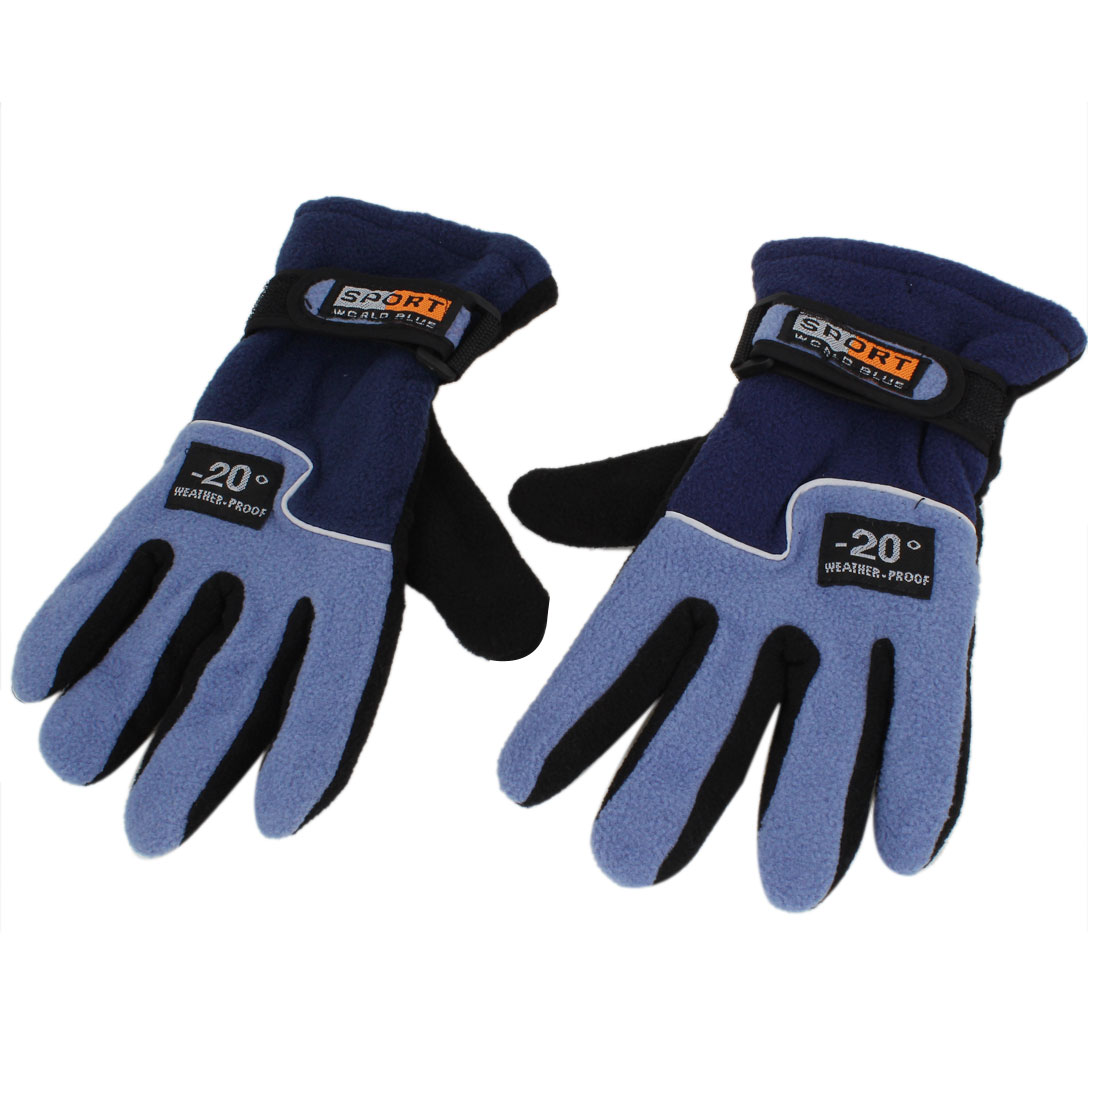 Pair Outdoor Cycling Skiing Fleece Thermal Winter Gloves Light Blue for Unisex